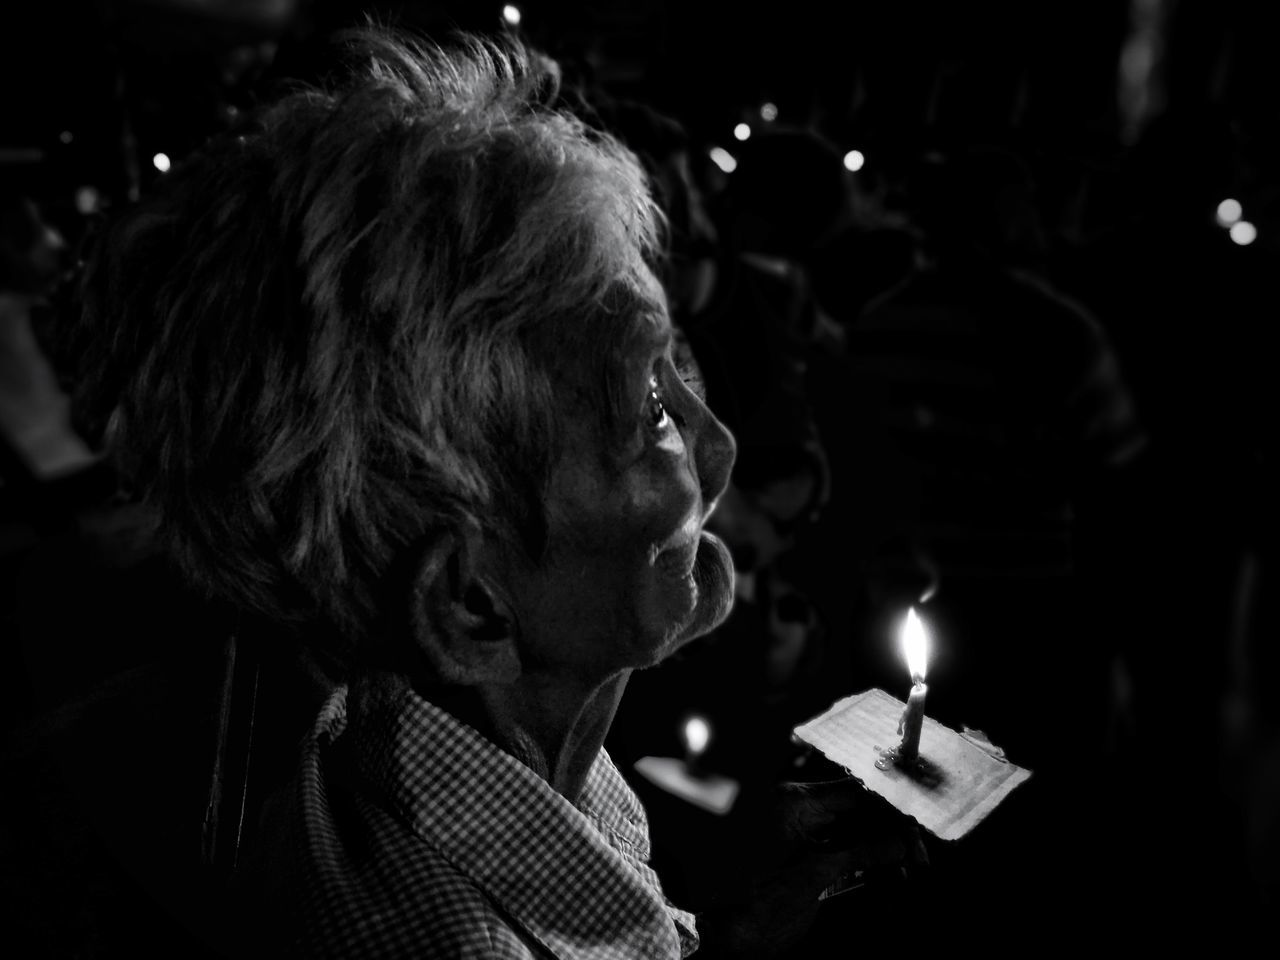 One Woman Only Only Women One Person Night Adults Only Short Hair Headshot Adult People Focus On Foreground Real People Women Close-up Illuminated Streetphoto_bw Streetphotography Eyeem Philippines Faith The Portraitist - 2017 EyeEm Awards The Street Photographer - 2017 EyeEm Awards The Photojournalist - 2017 EyeEm Awards This Week On Eyeem BYOPaper!